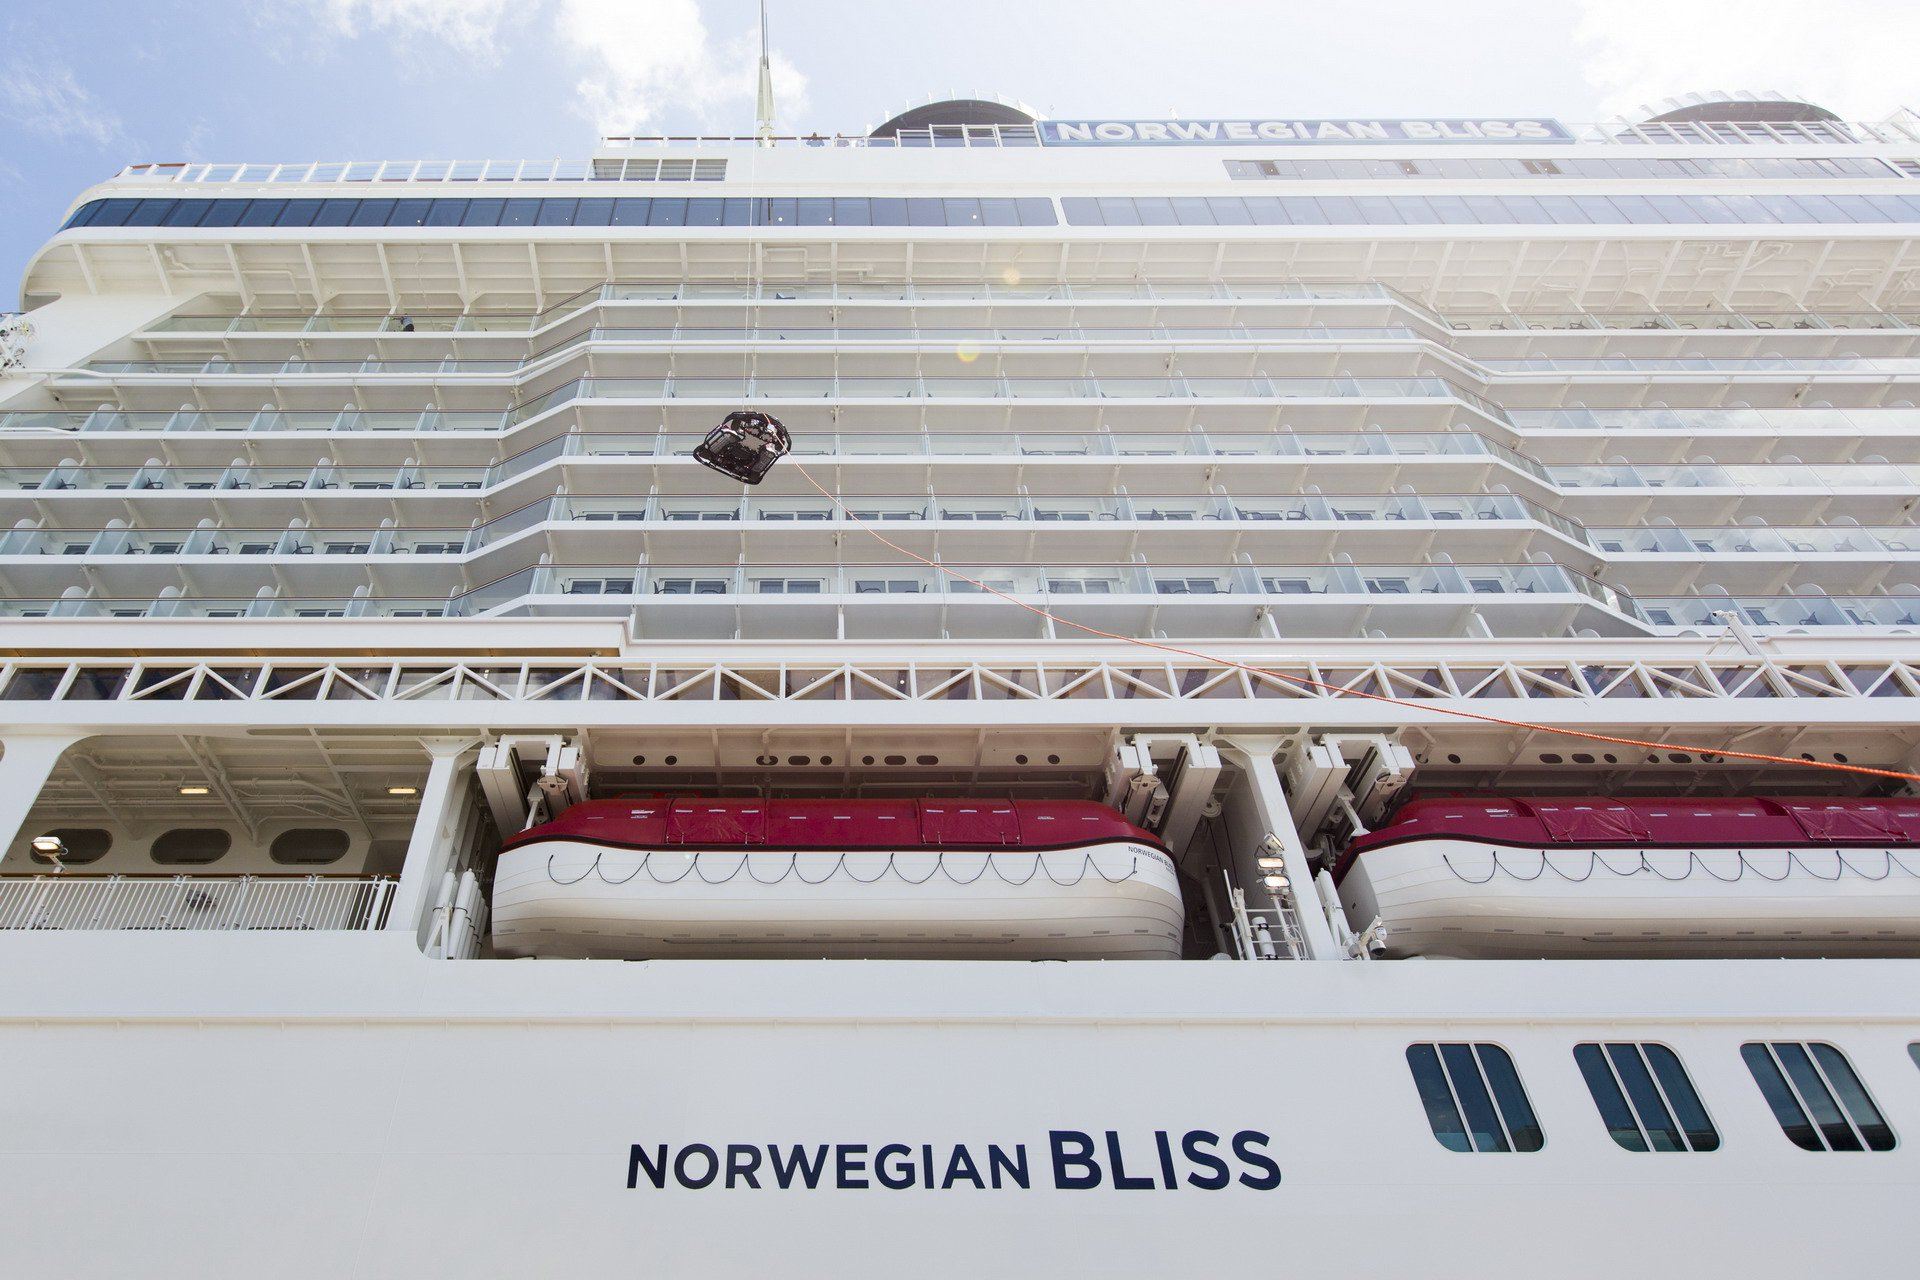 Norwegian_Bliss_0010